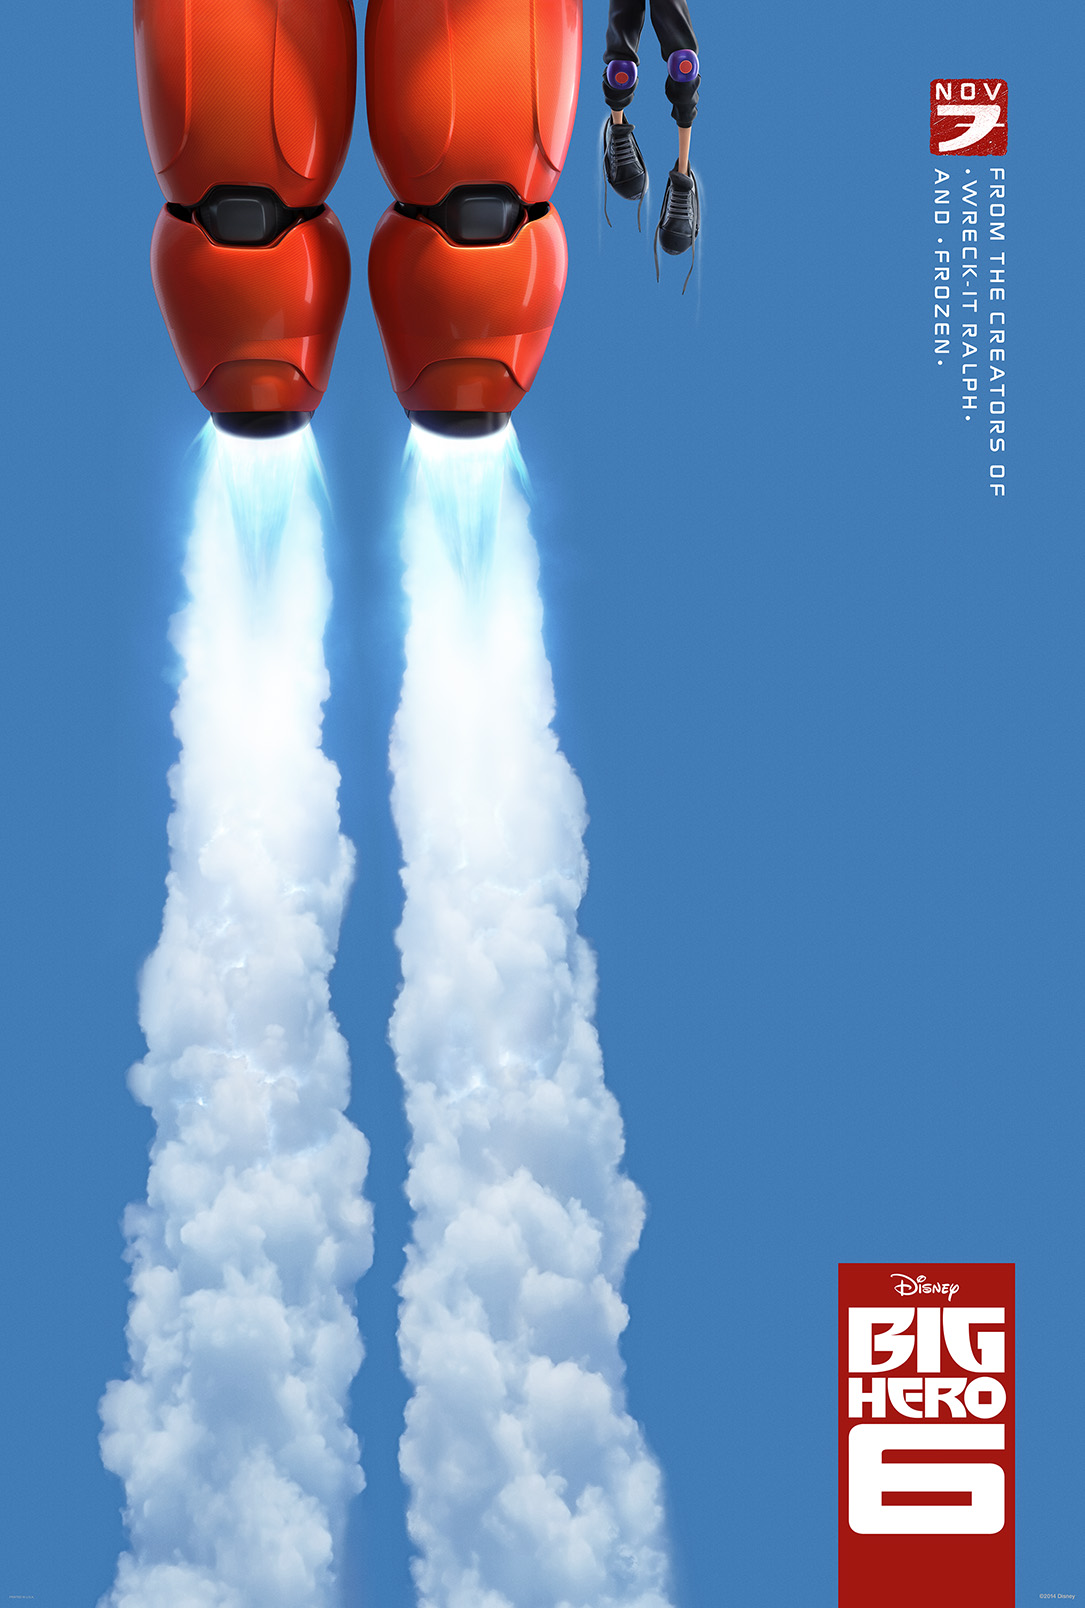 Disney BIG HERO 6 robot teaser poster mecha anime